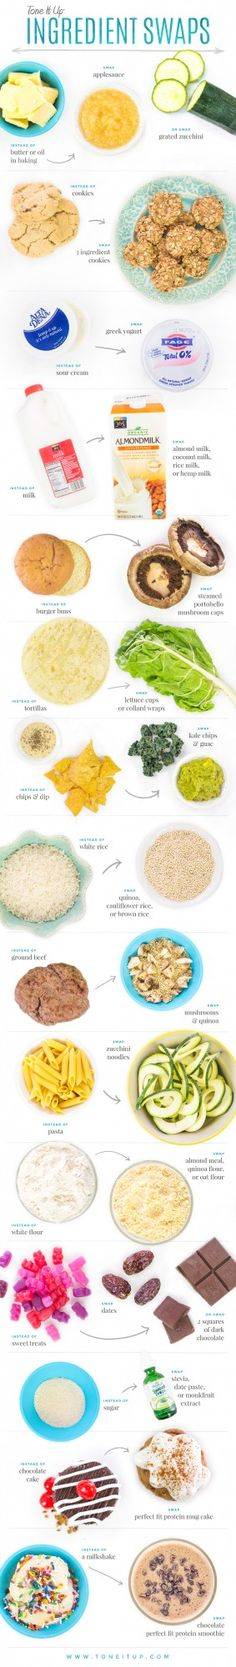 Healthy Ingredient Swaps for recipes & cooking. Tone It Up Approved!